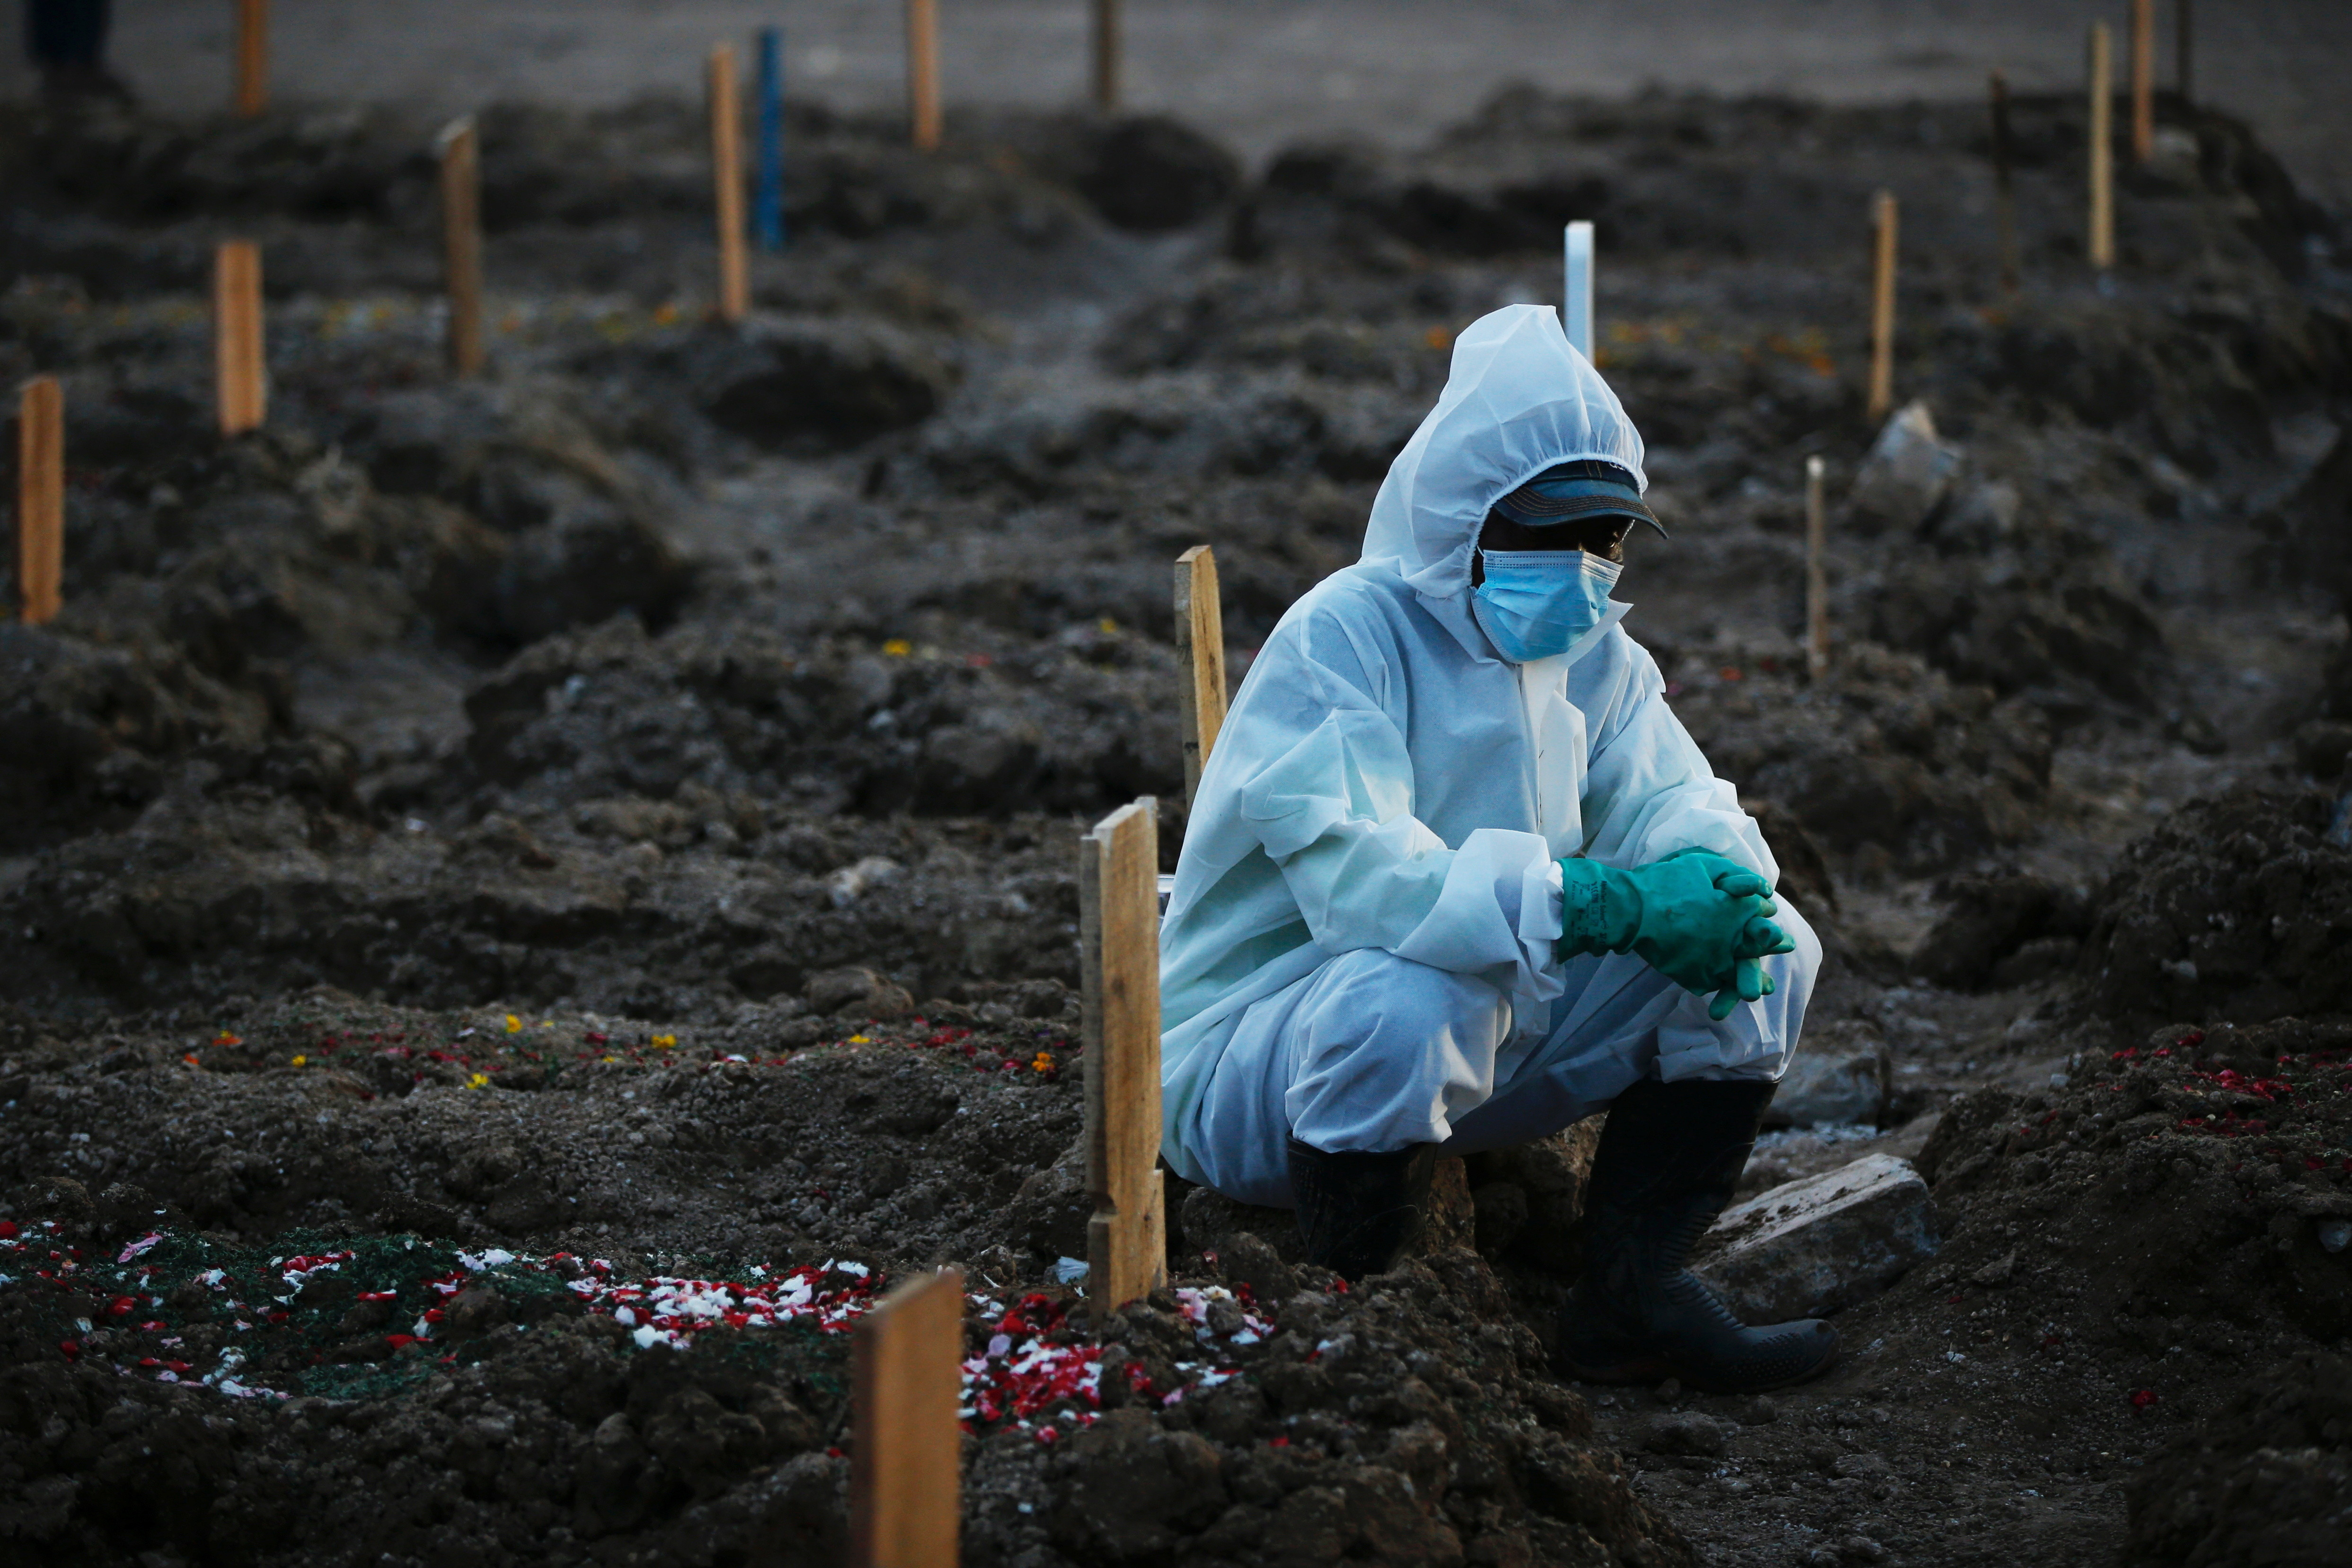 Gravedigger wearing personal protective equipment (PPE) takes a break as he works at the burial area provided by the government for coronavirus disease (COVID-19) victims, in Jakarta, Indonesia, June 28, 2021.